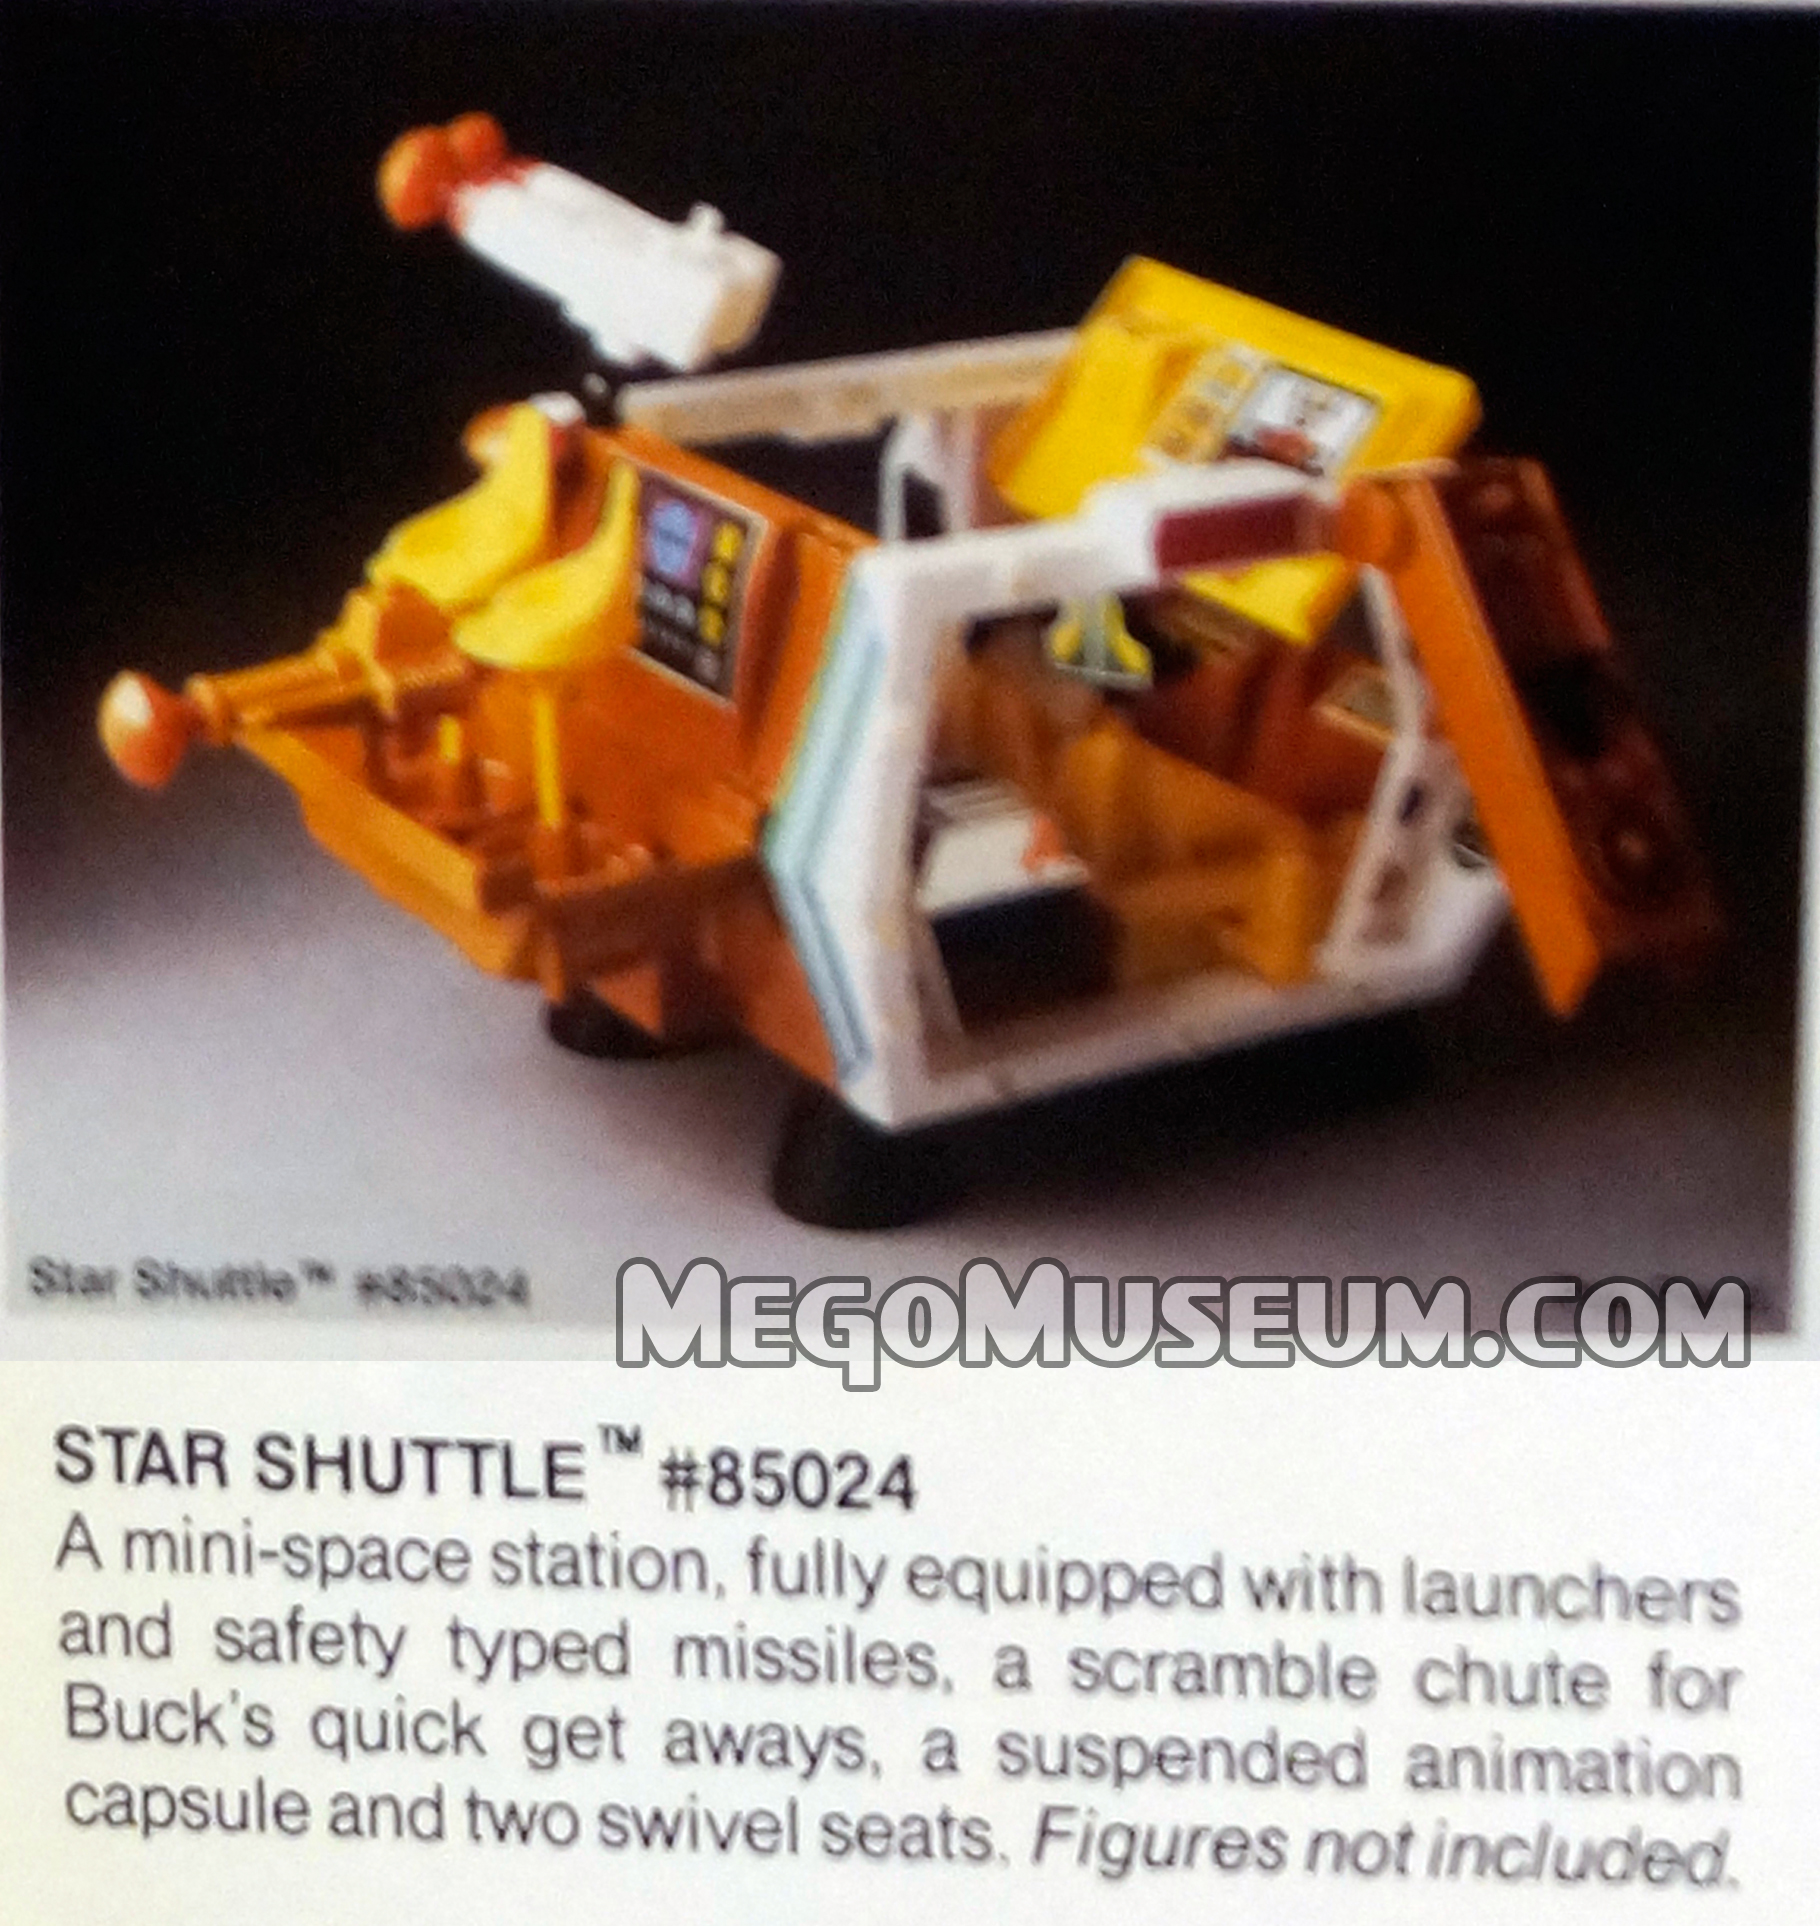 buck rogers star shuttleu star shuttle is also known as the micronauts astro station a repurposed toy from the takara microman line